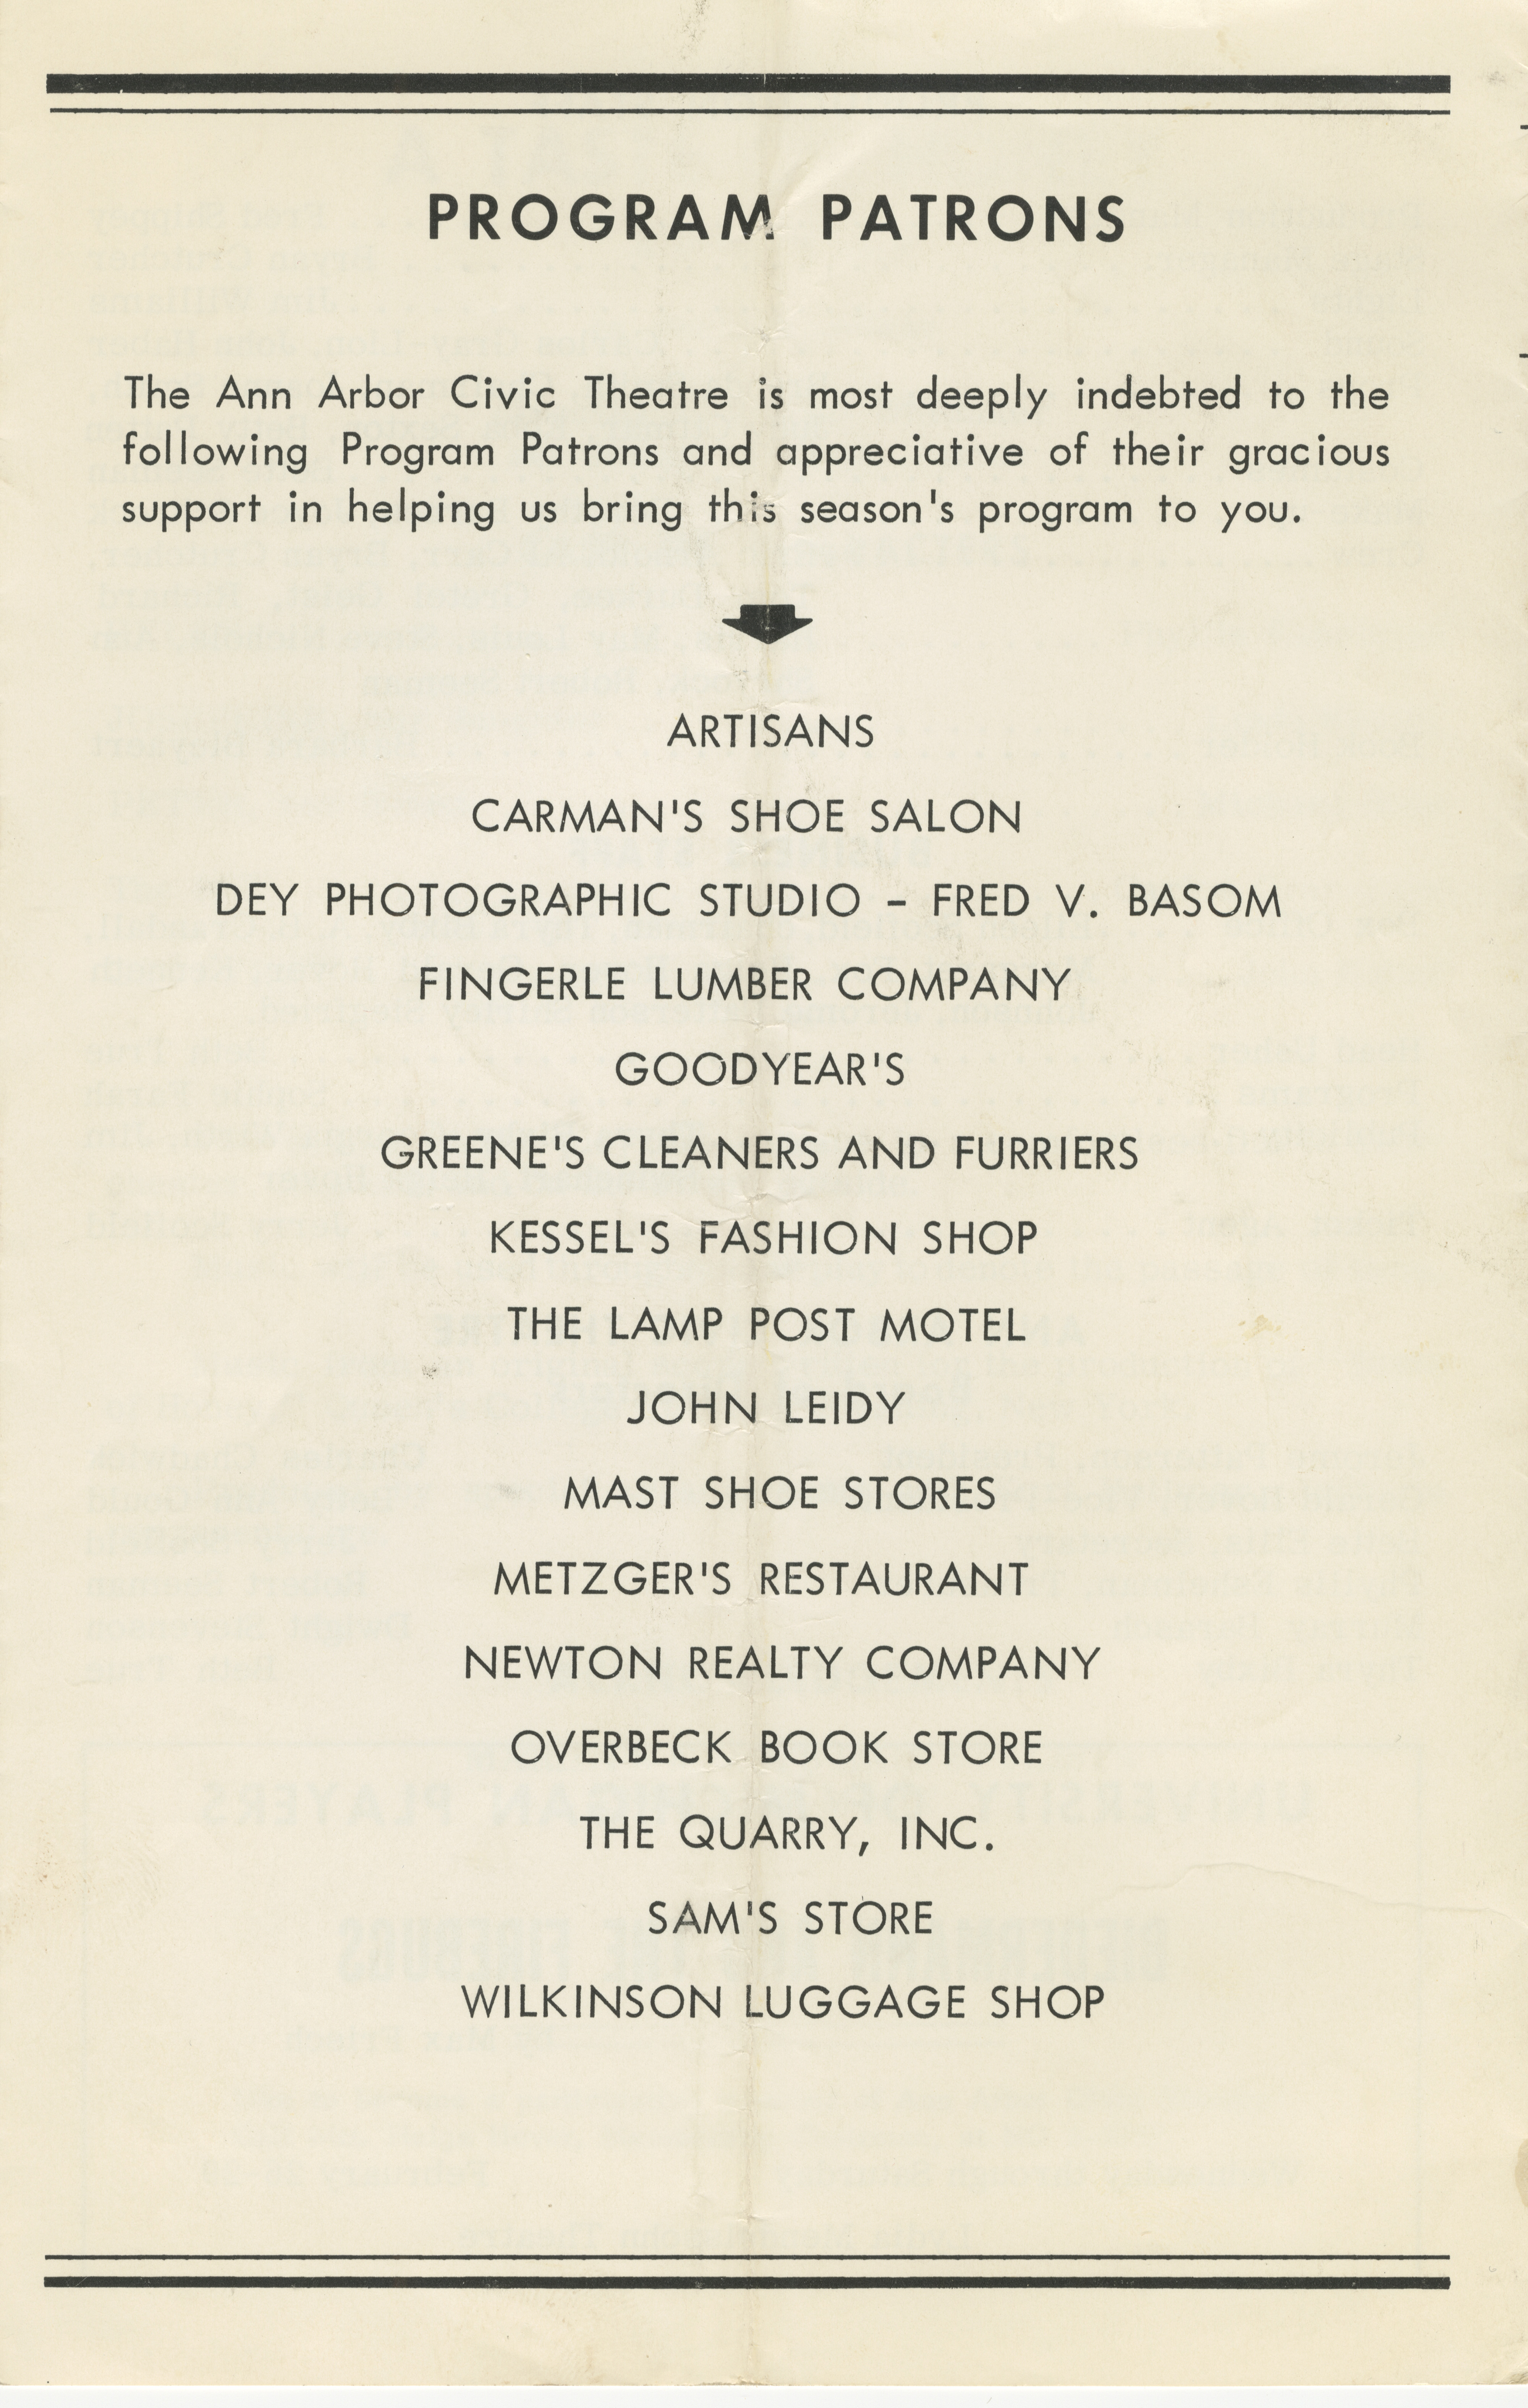 Ann Arbor Civic Theatre Program: A Tast Of Honey, January 30, 1964 image